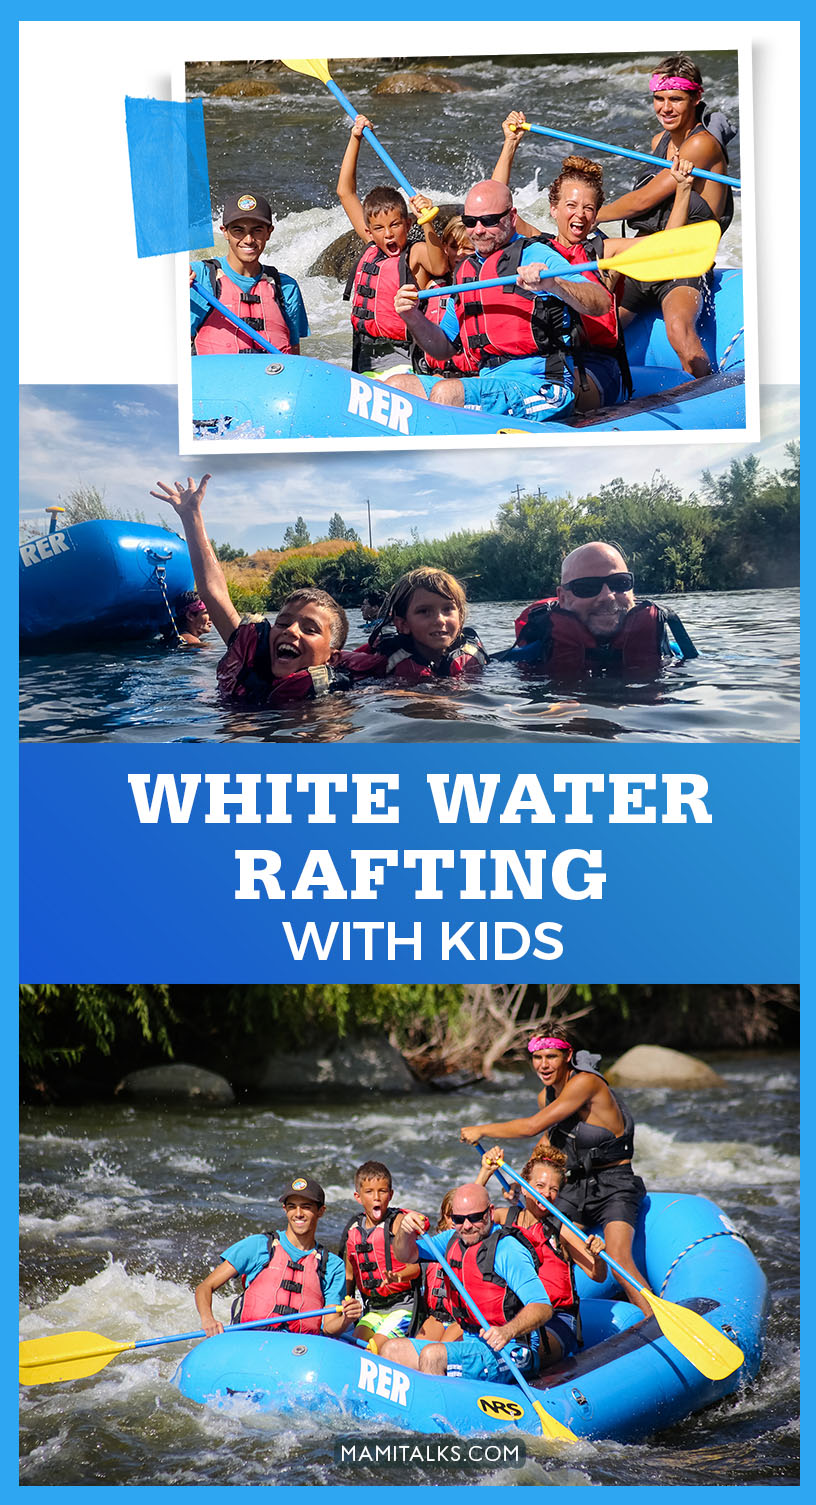 White Water rafting with kids -MamiTalks.com